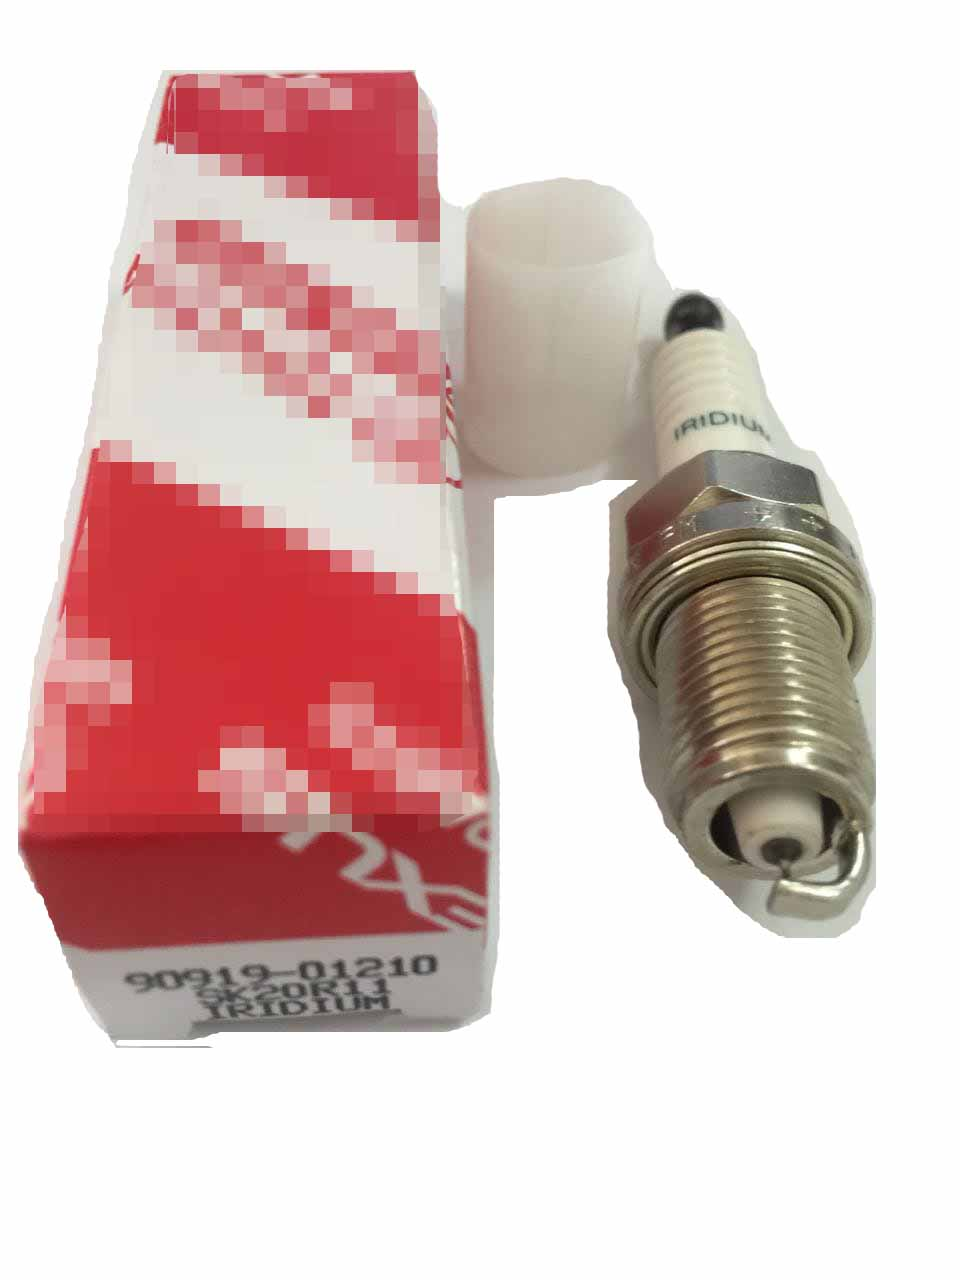 toyota spark plug new packing 9091901210 9091901253 9091901247